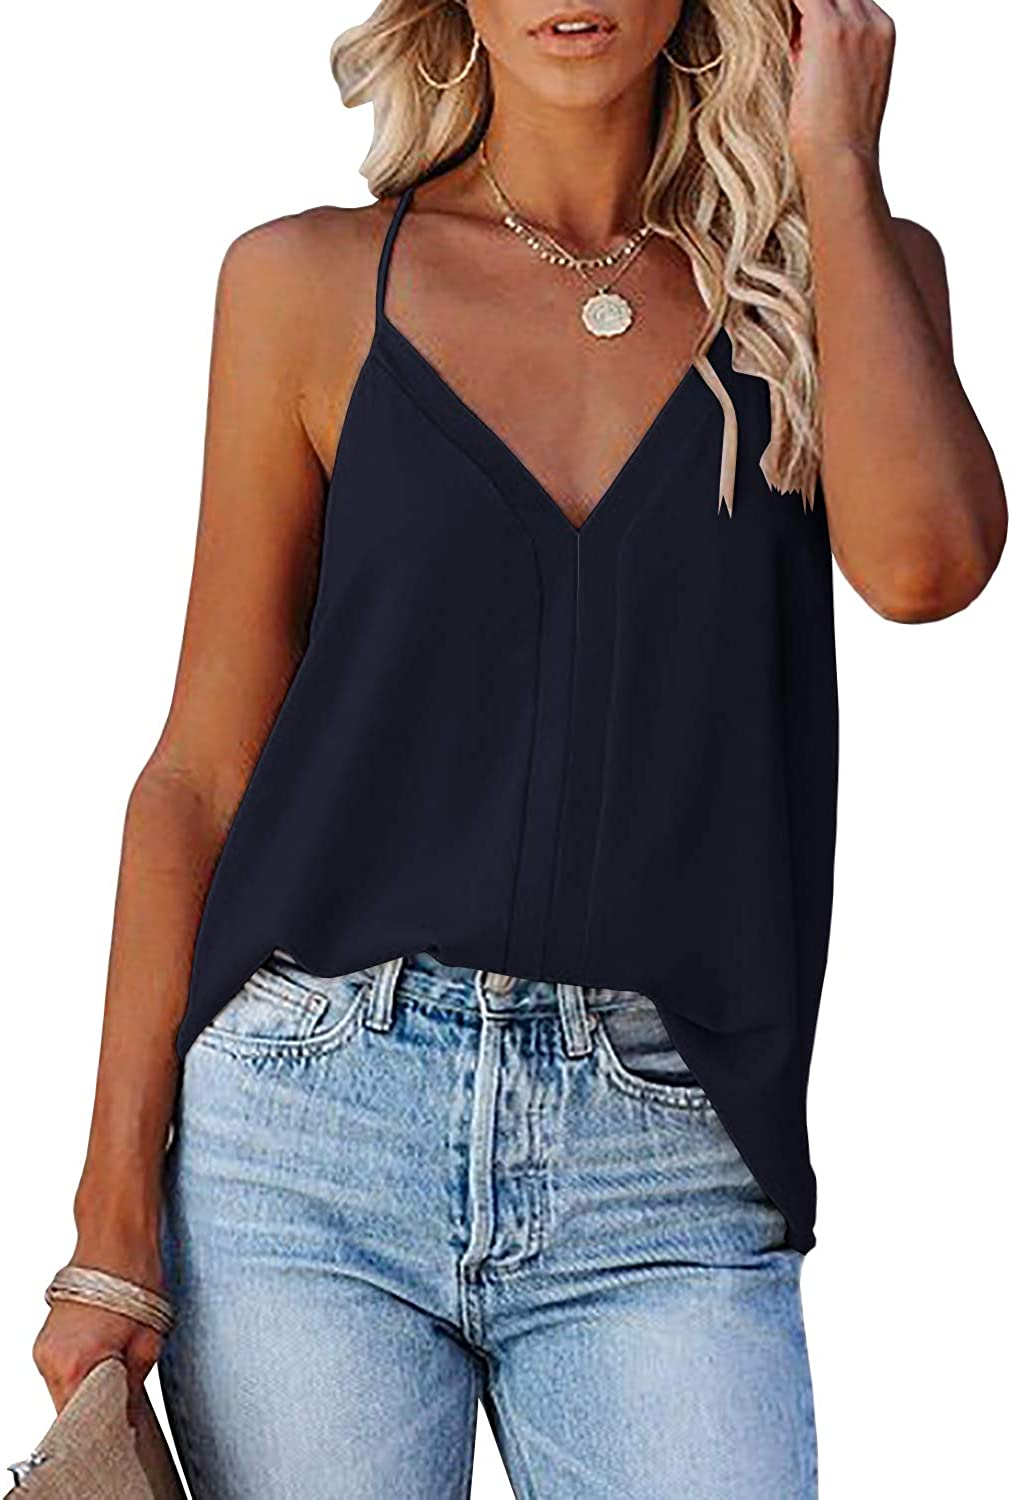 Coutgo Womens V Neck Cami Tops Sleeveless Shirts with Adjustable Spaghetti Strap Racerback Blouses